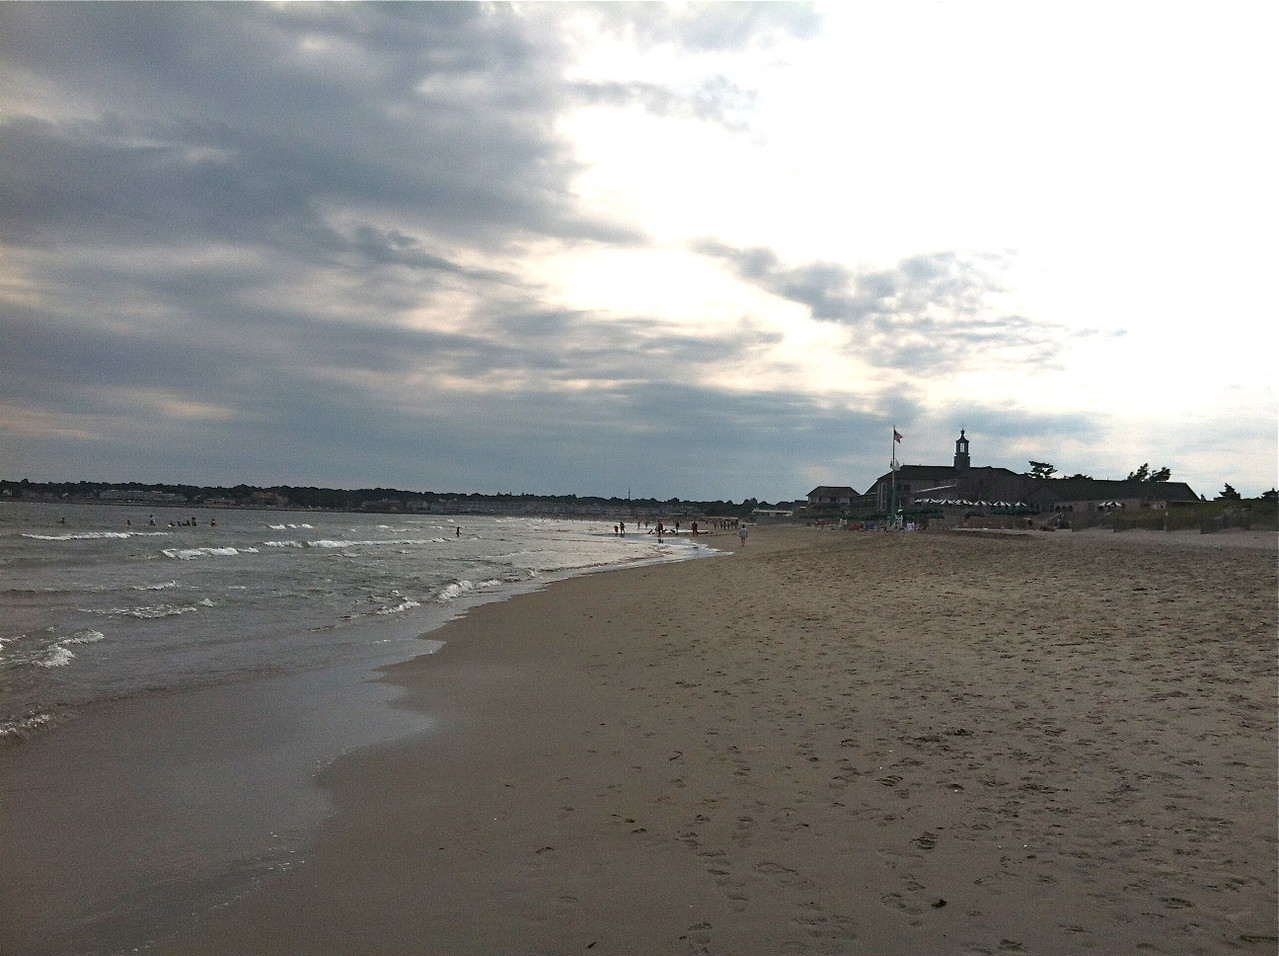 Narragansett Beach, RI  August, 2013